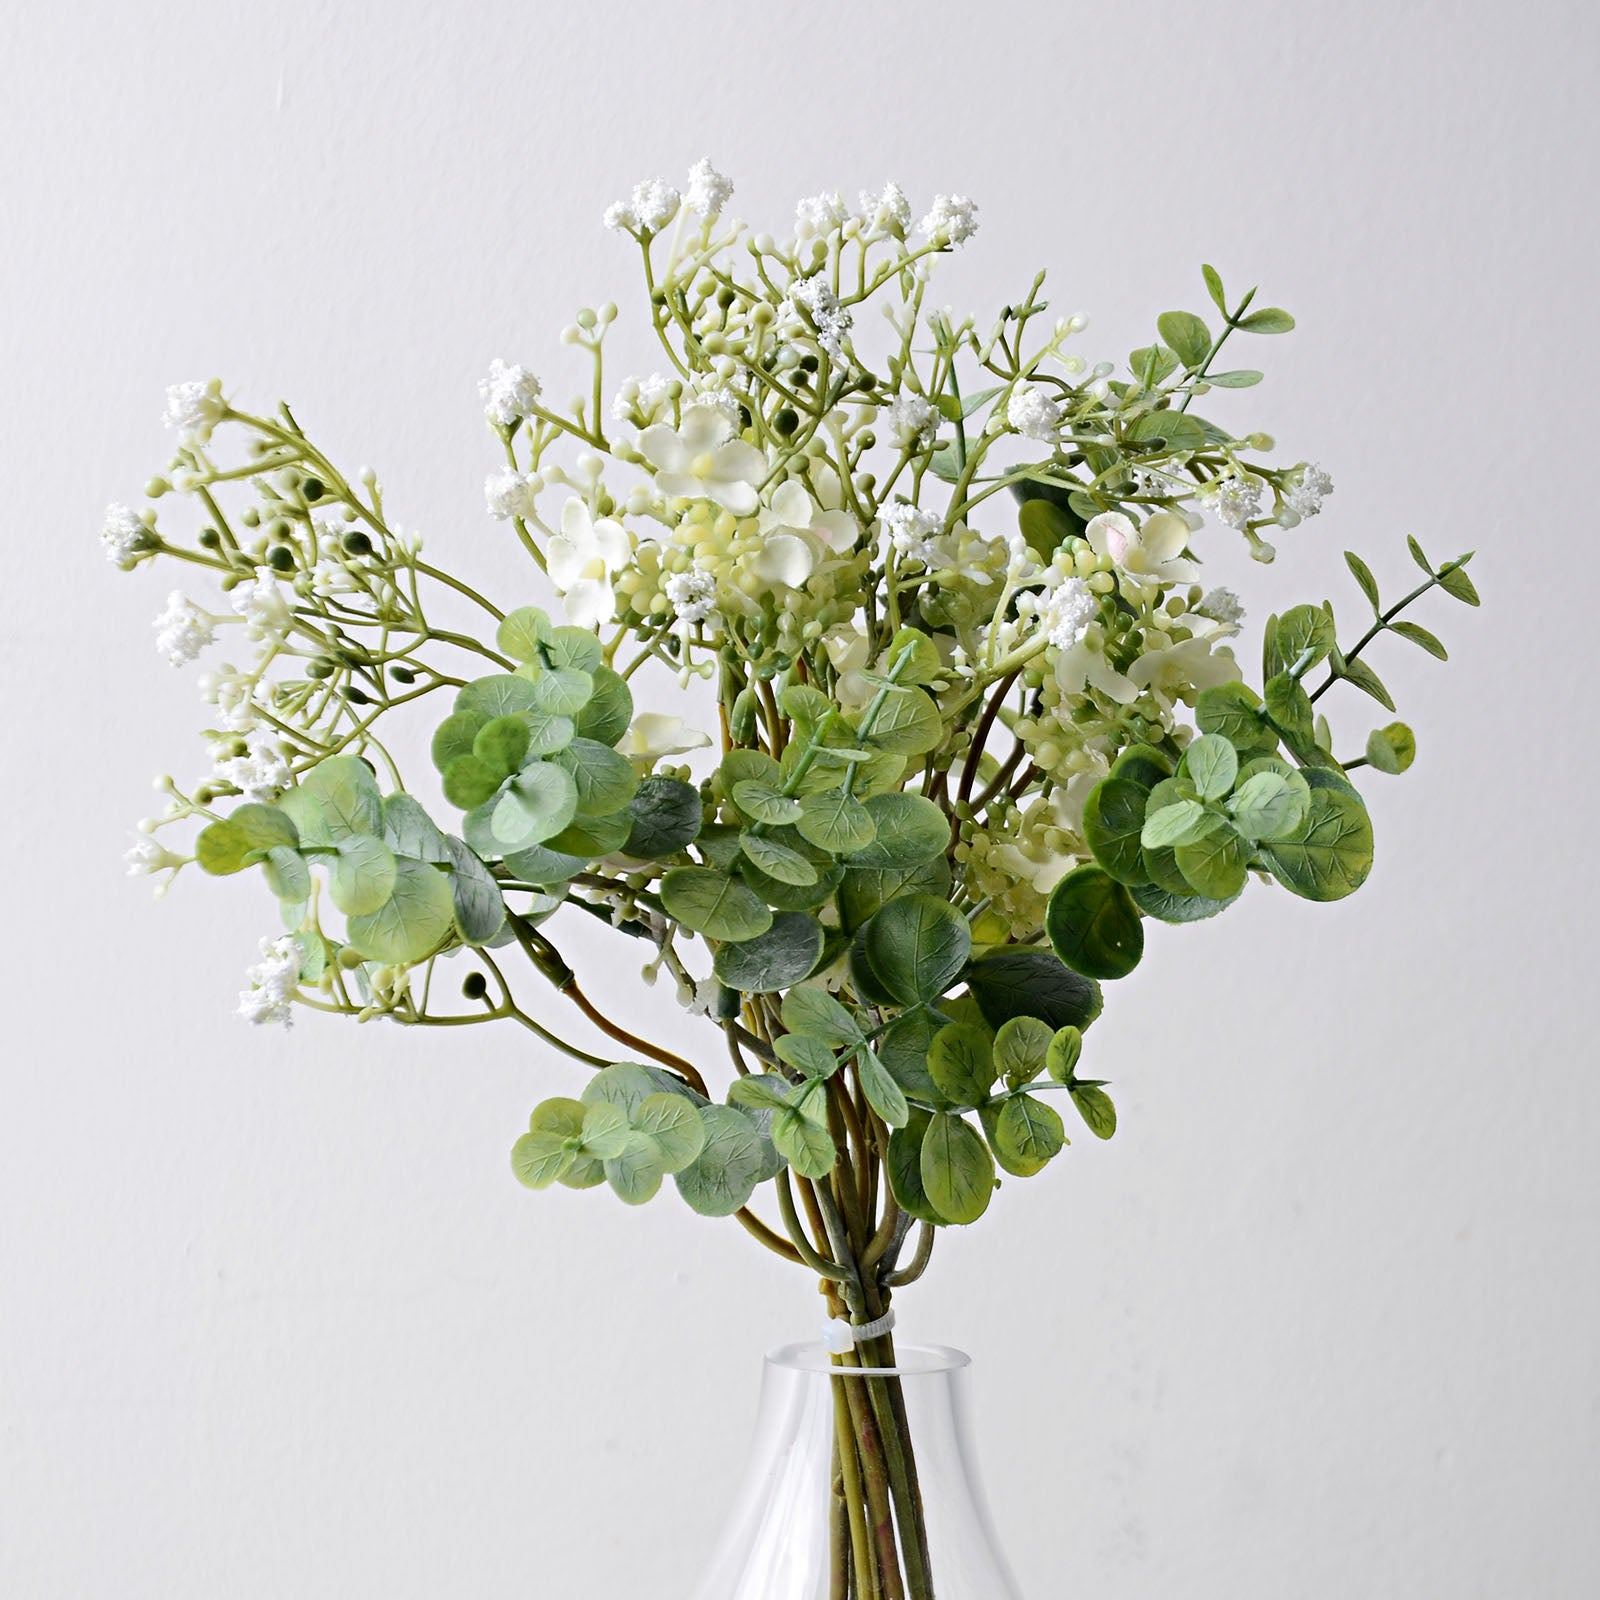 Handmade   decorative artificial plant YXBYT-B3581-WH